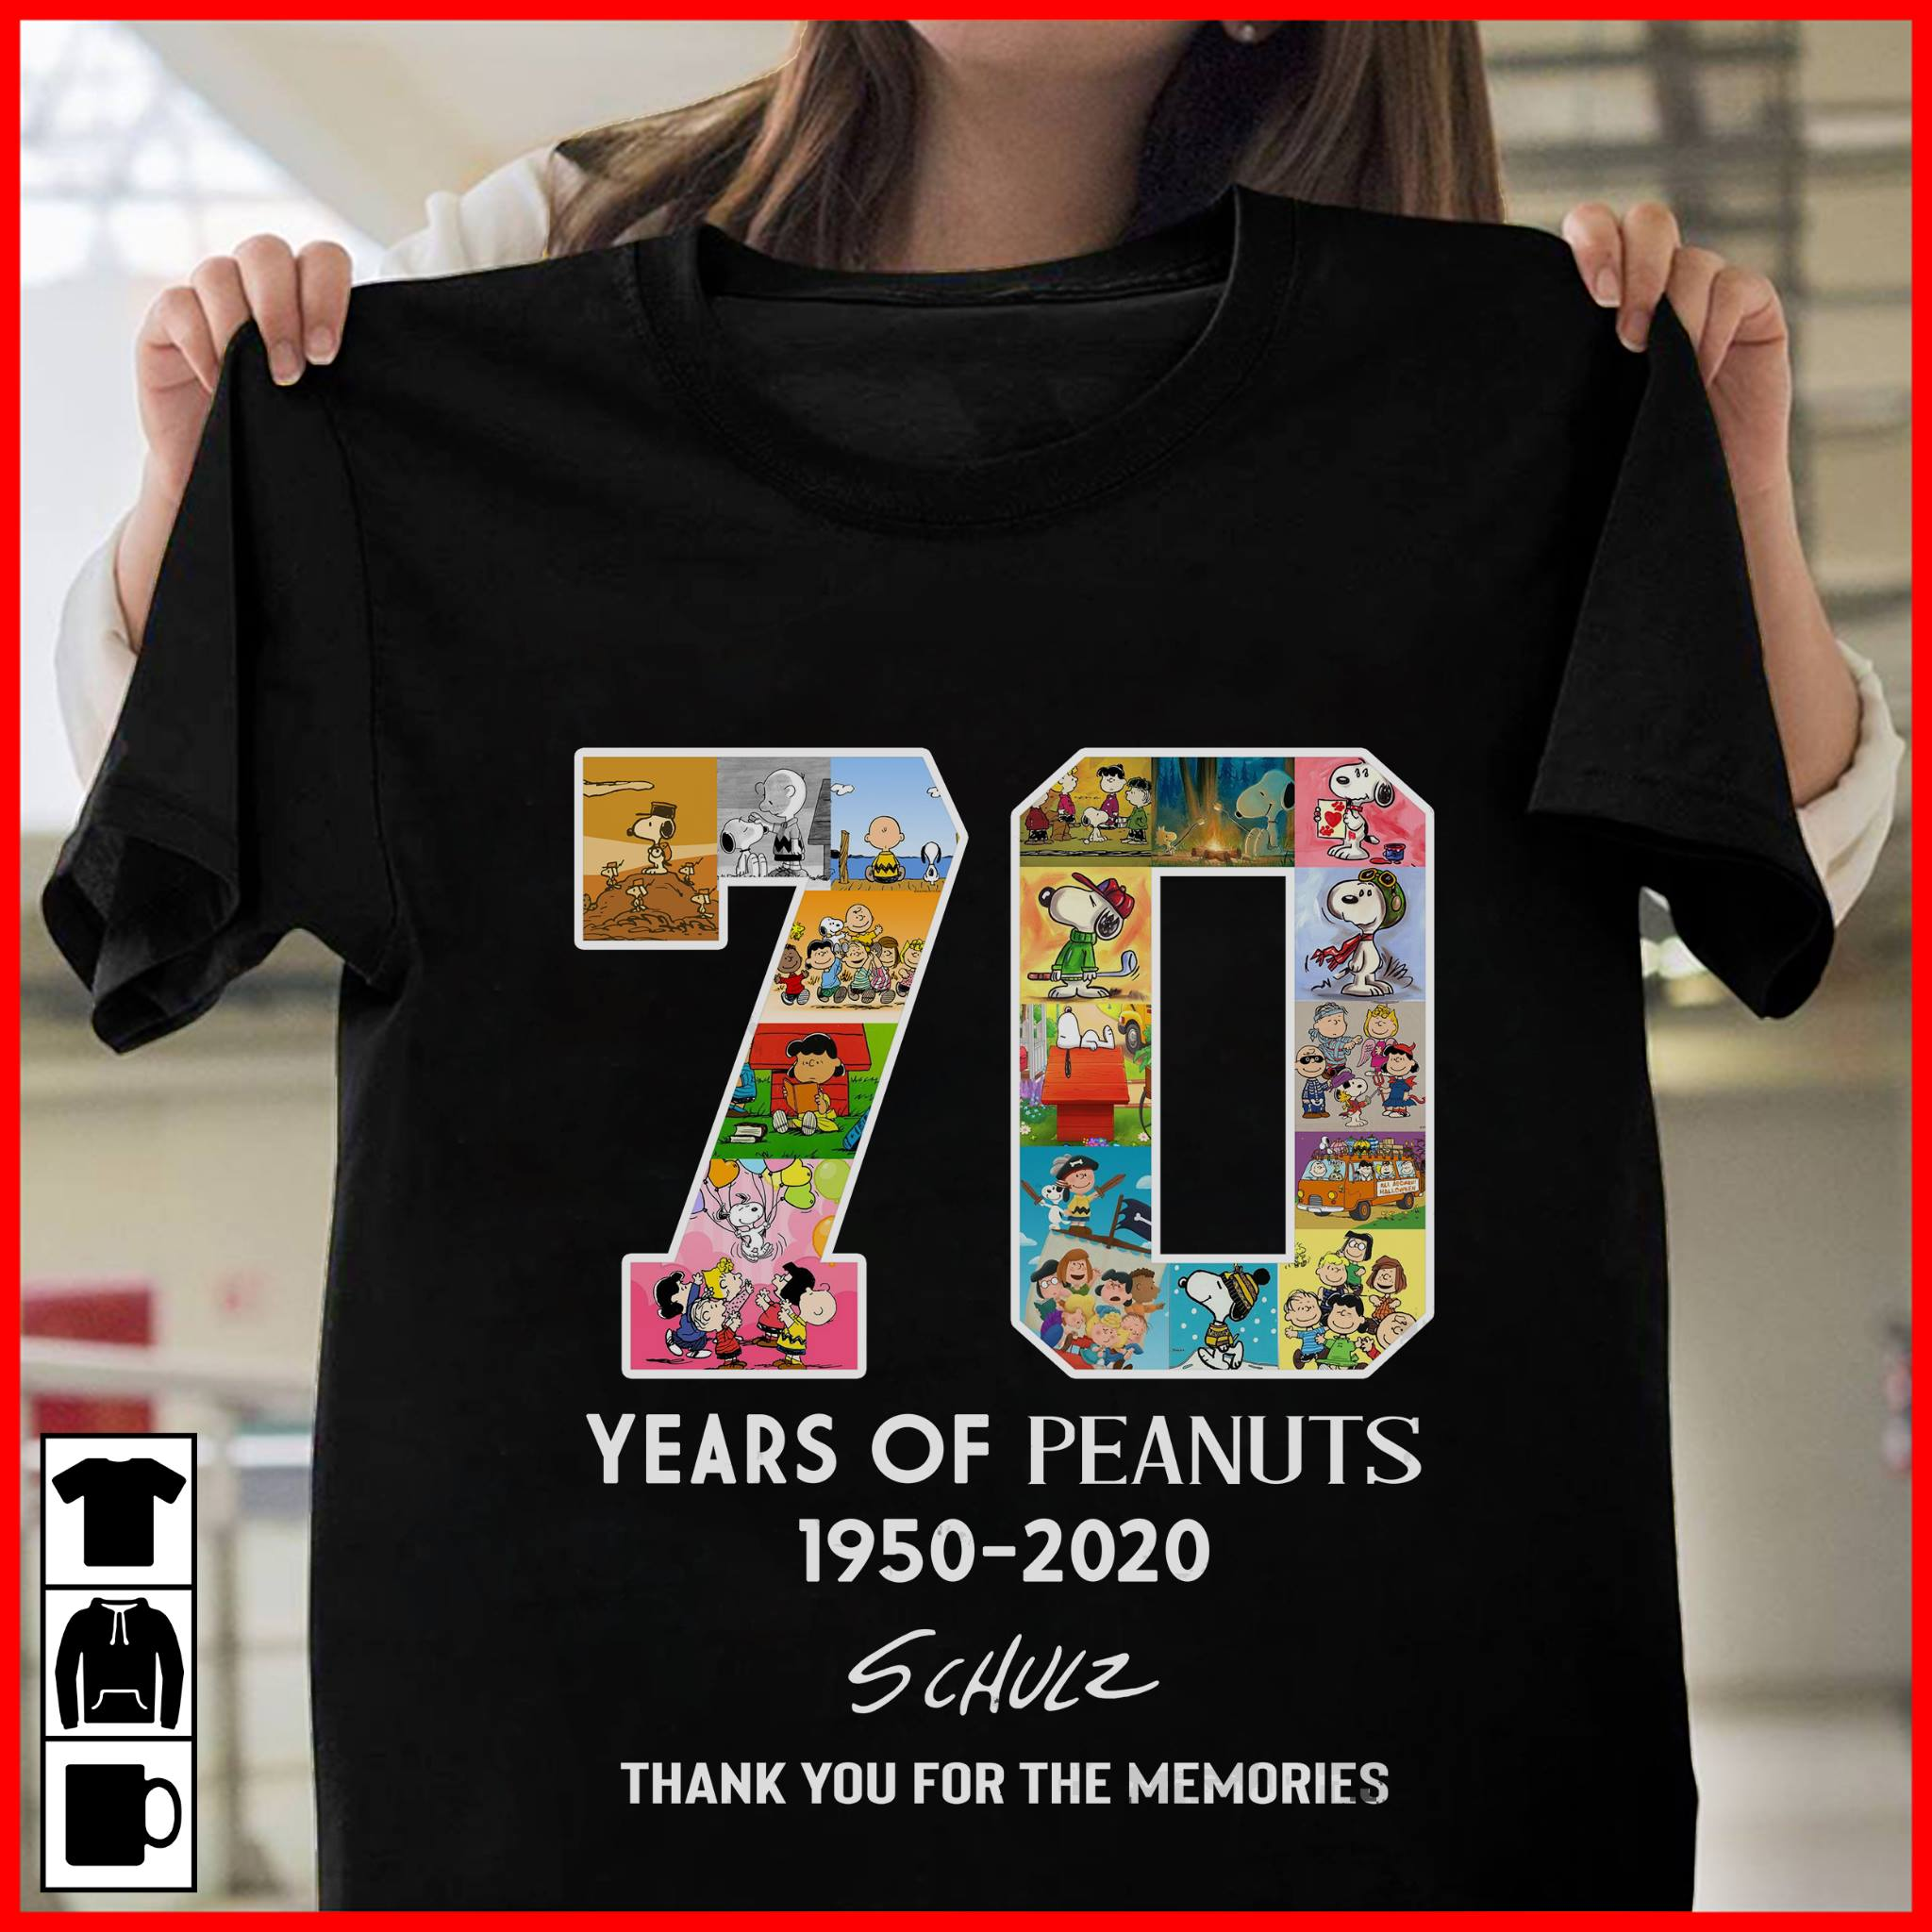 70 Years Of Peanuts 1950 2020 Schulz Shirt